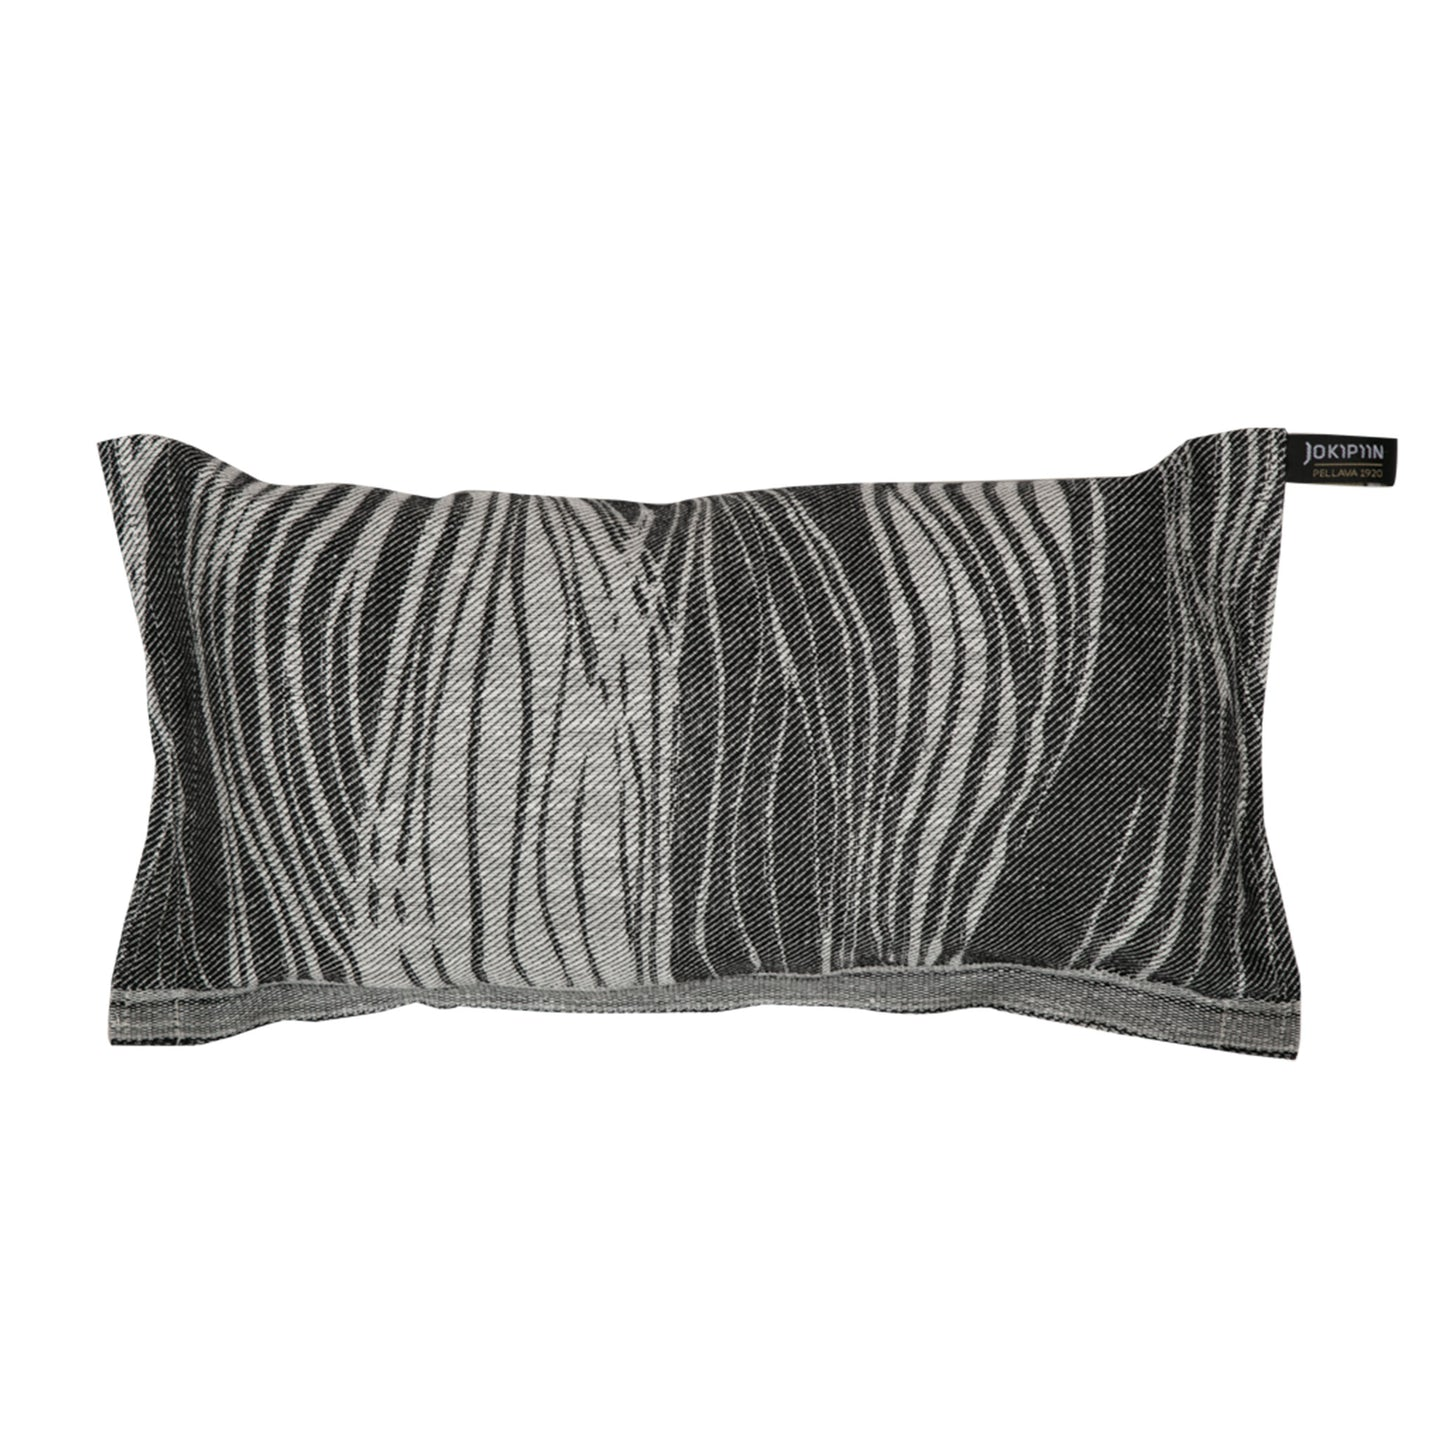 Sauna Pillow Virta by Jokipiin Pellava White / Black Default Title Sauna Pillow Finnmark Sauna